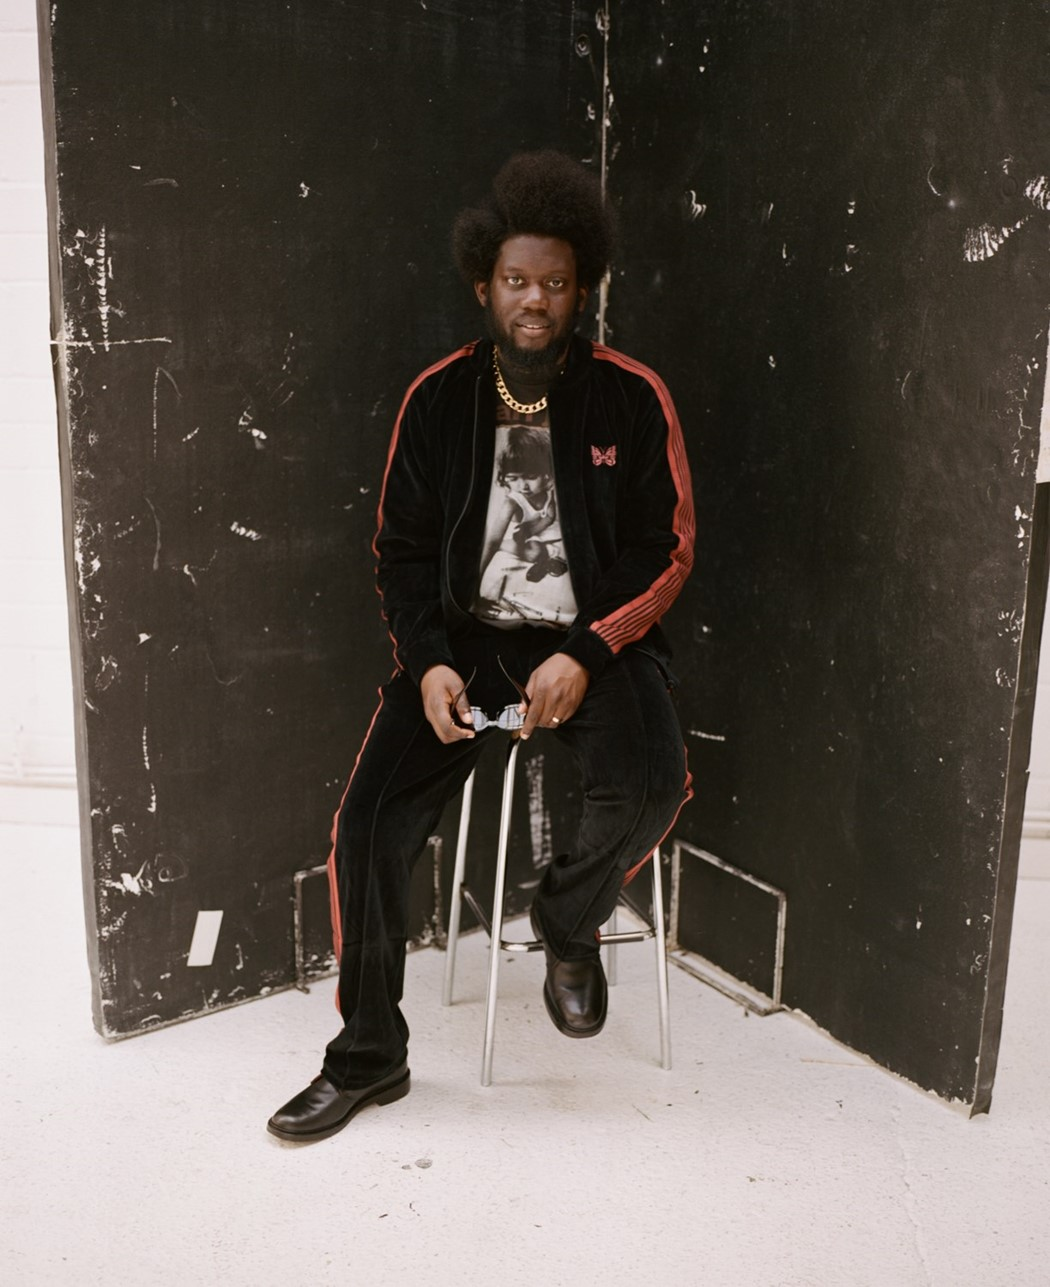 Michael Kiwanuka's Music is Medicine for the Soul